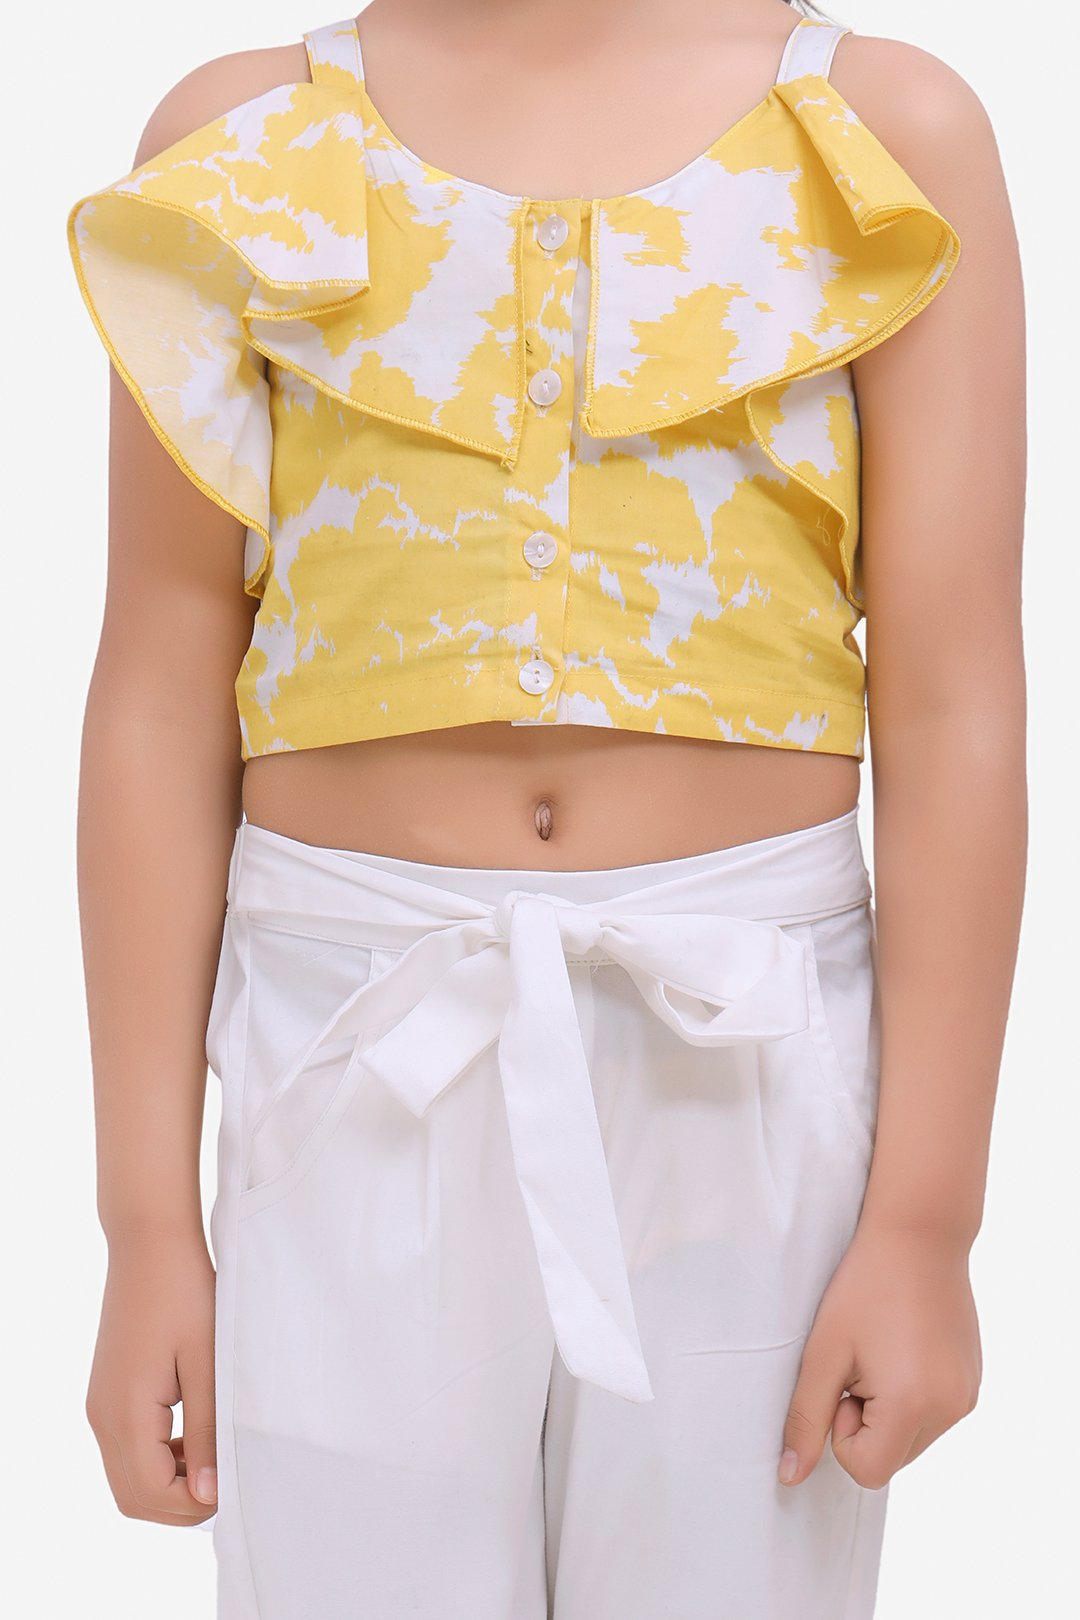 Fairies Forever Frill Top with Pants-Yellow and White